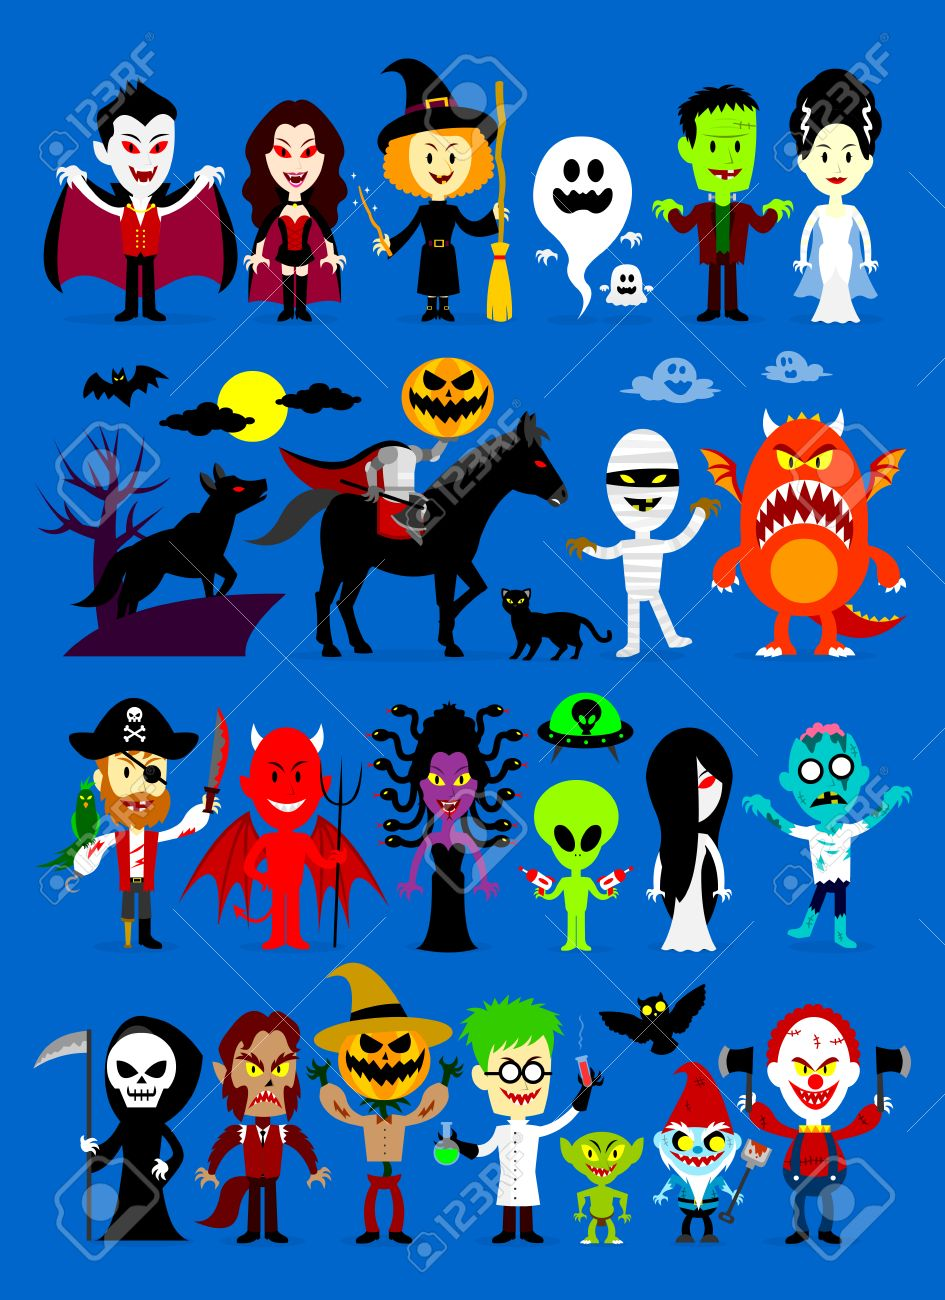 monsters mash halloween characters royalty free cliparts, vectors